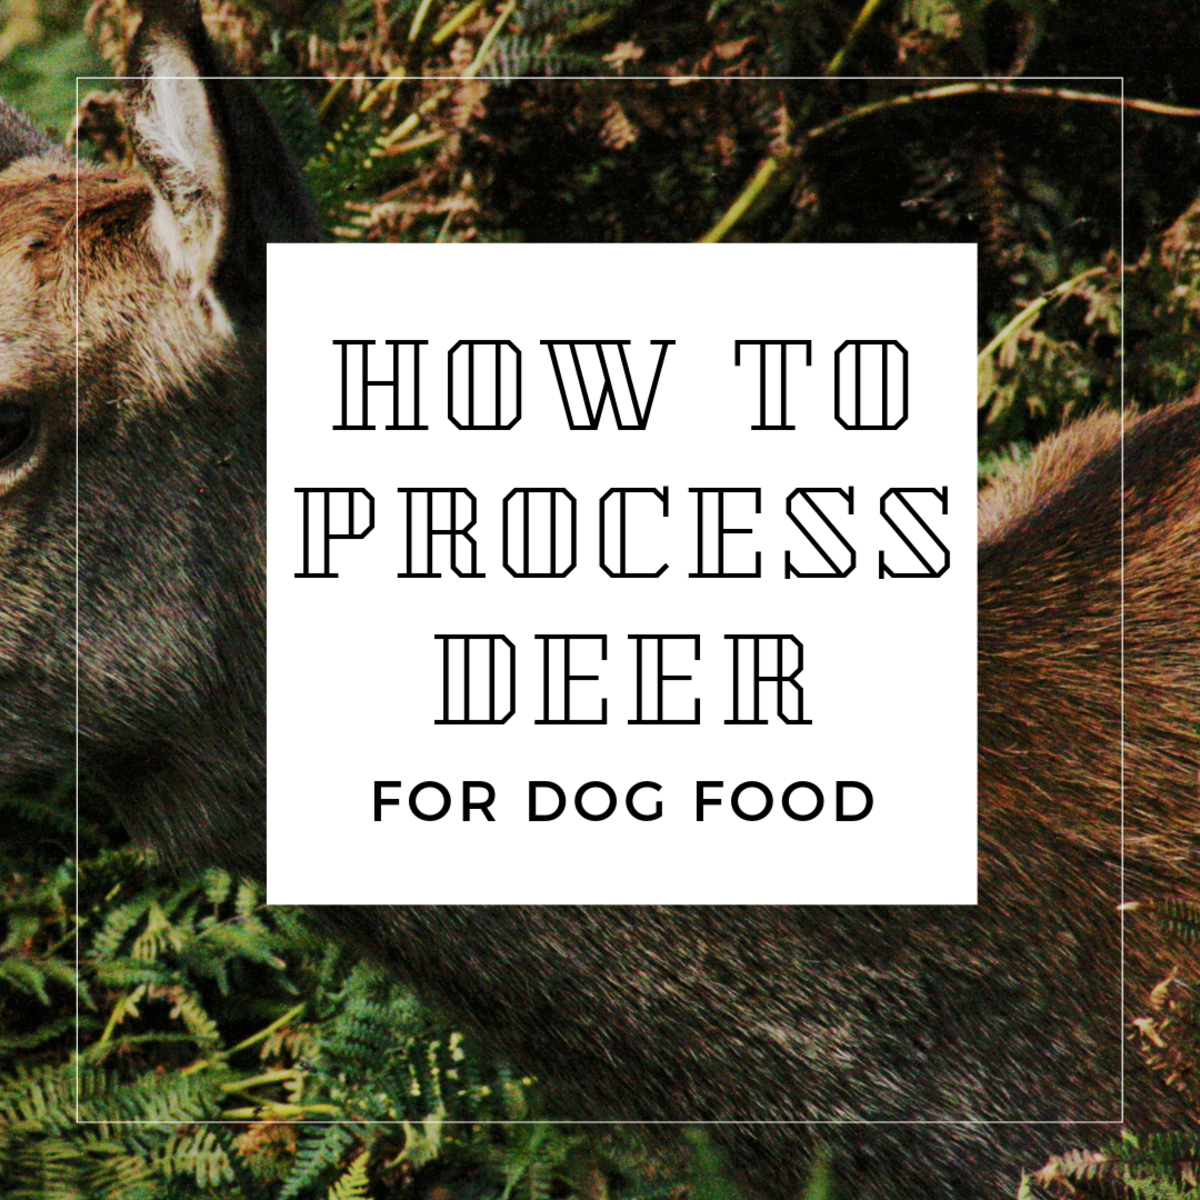 How to Skin a Deer for Raw Dog Food: An Illustrated Guide